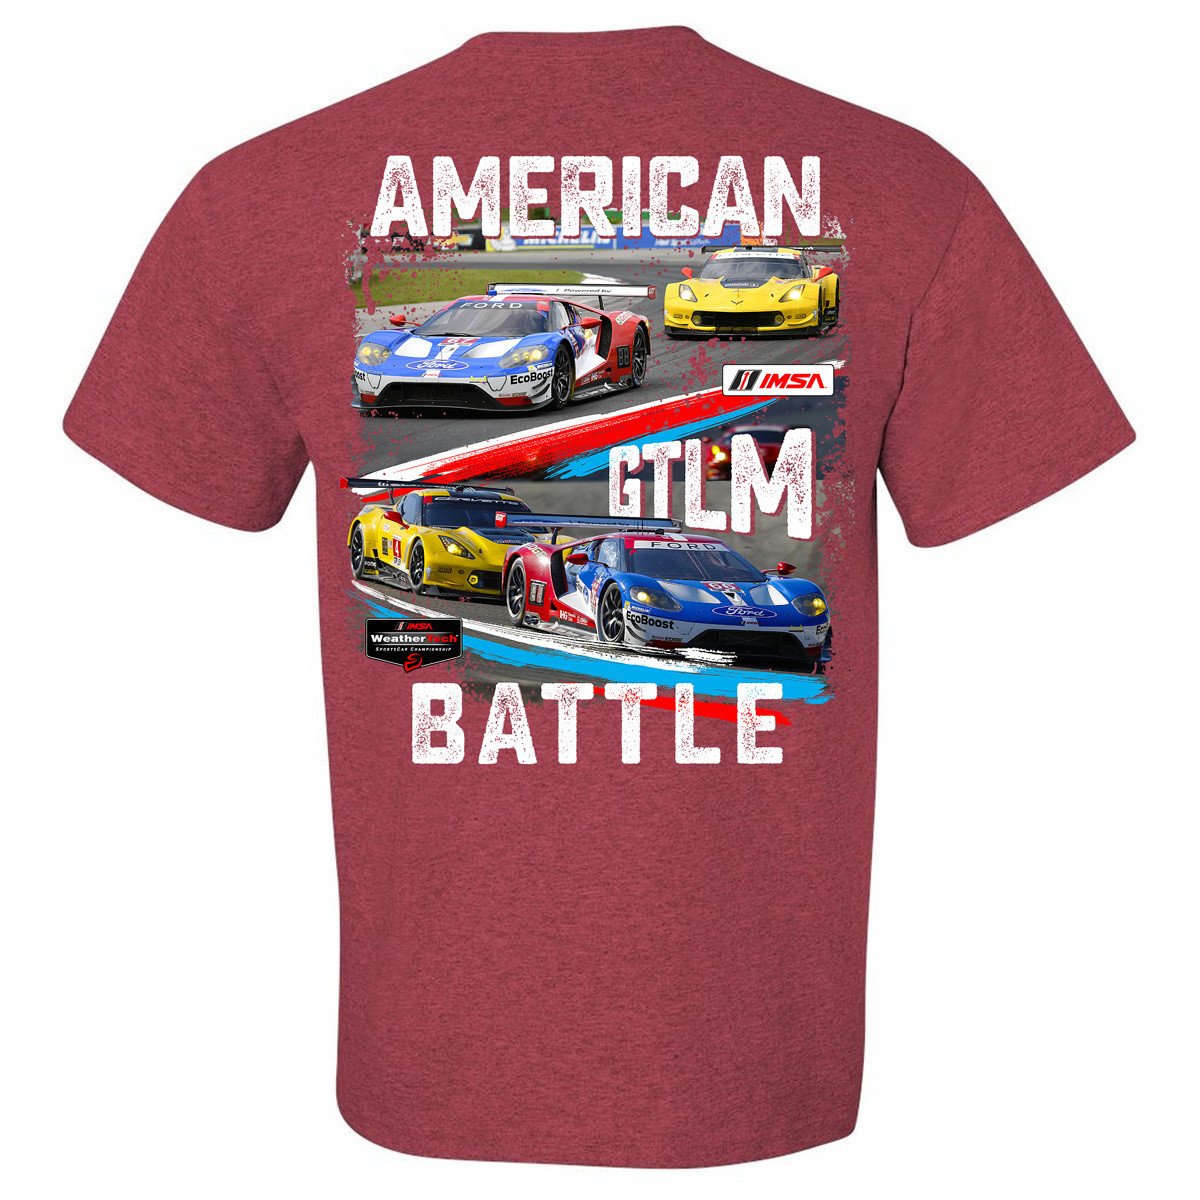 American Battle - Ford vs. Chevy